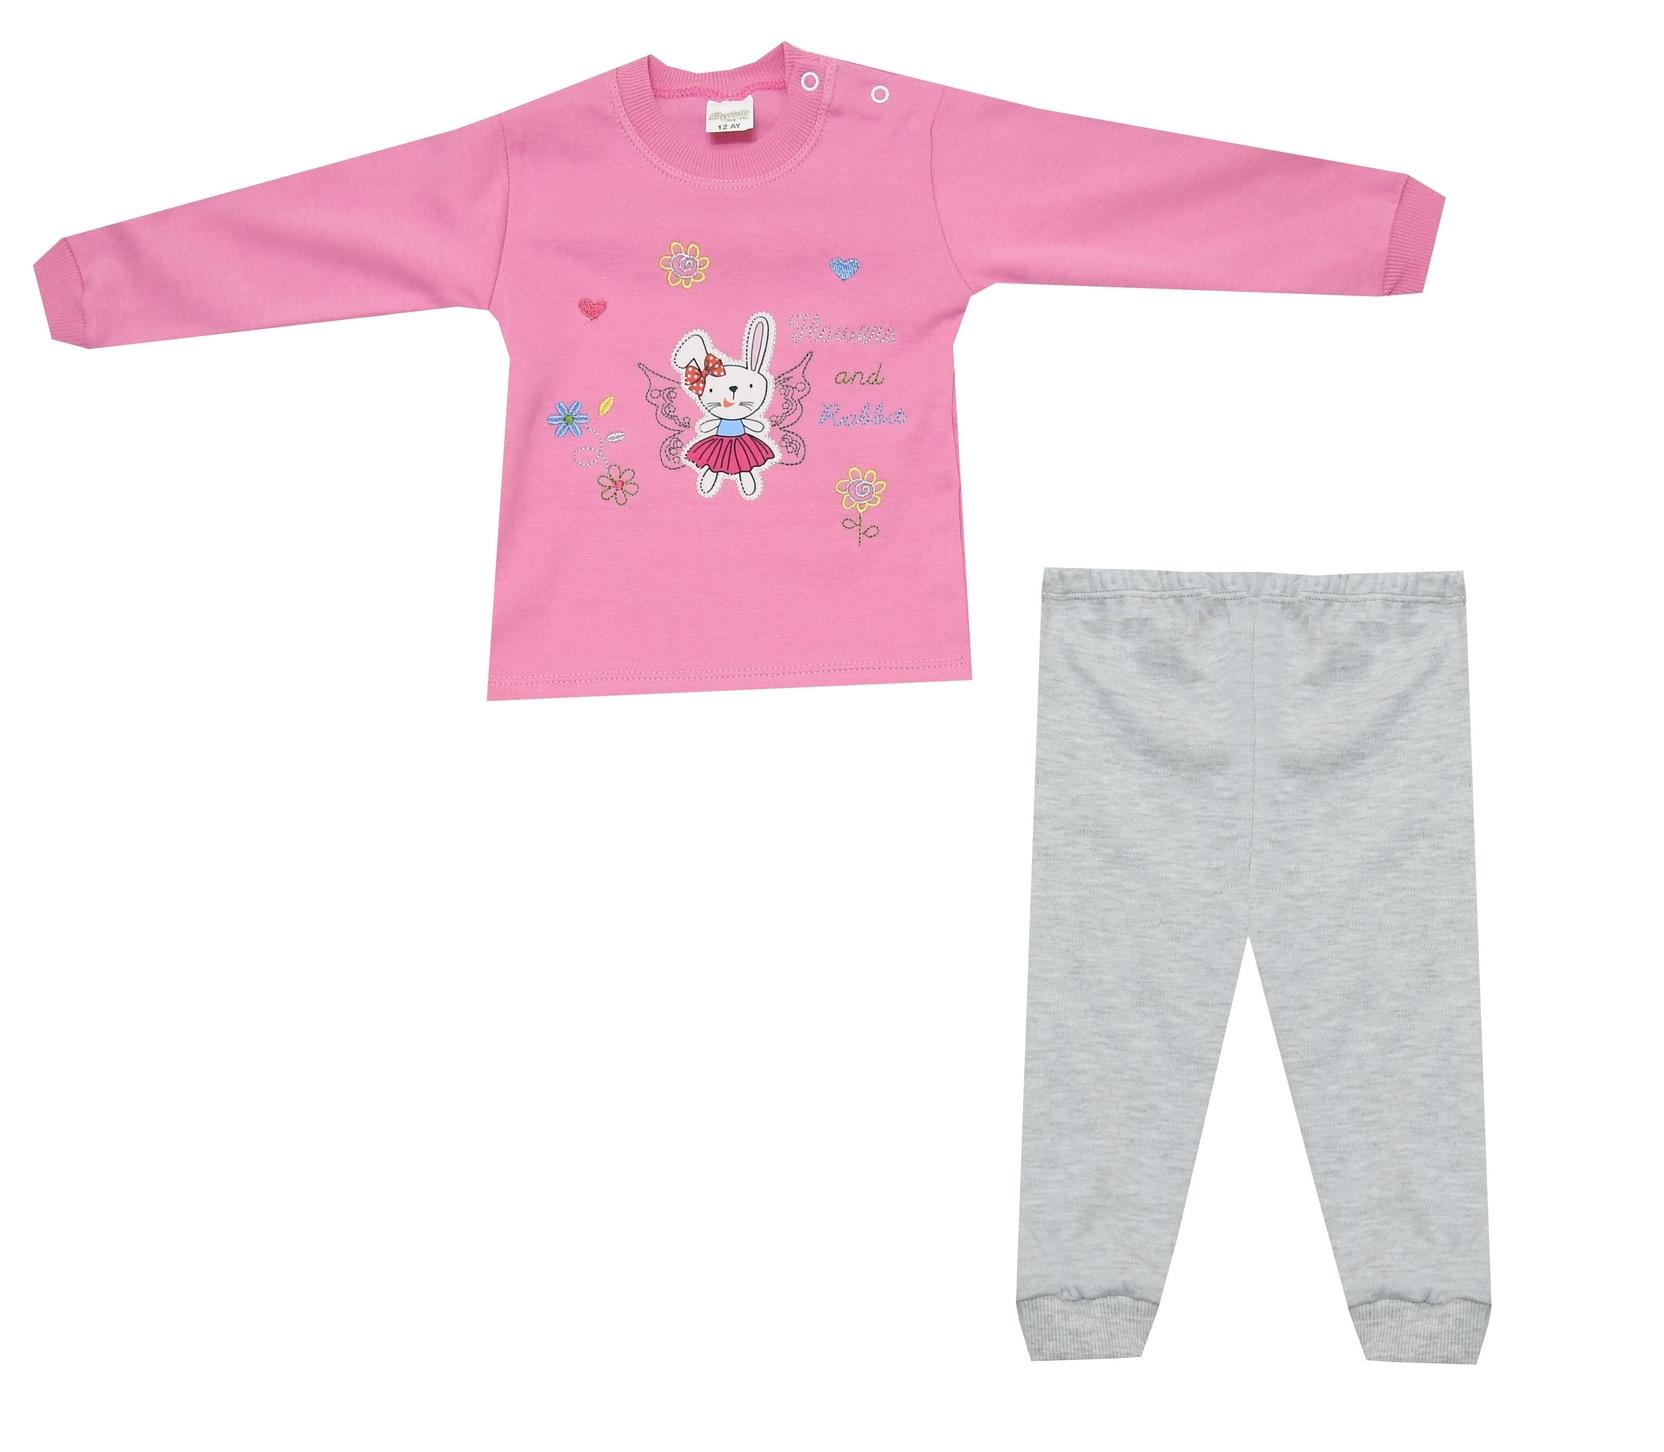 RABBIT AND FLOWER PRINTED DOUBLE SET FOR GIRL (6-9-12 MONTH)